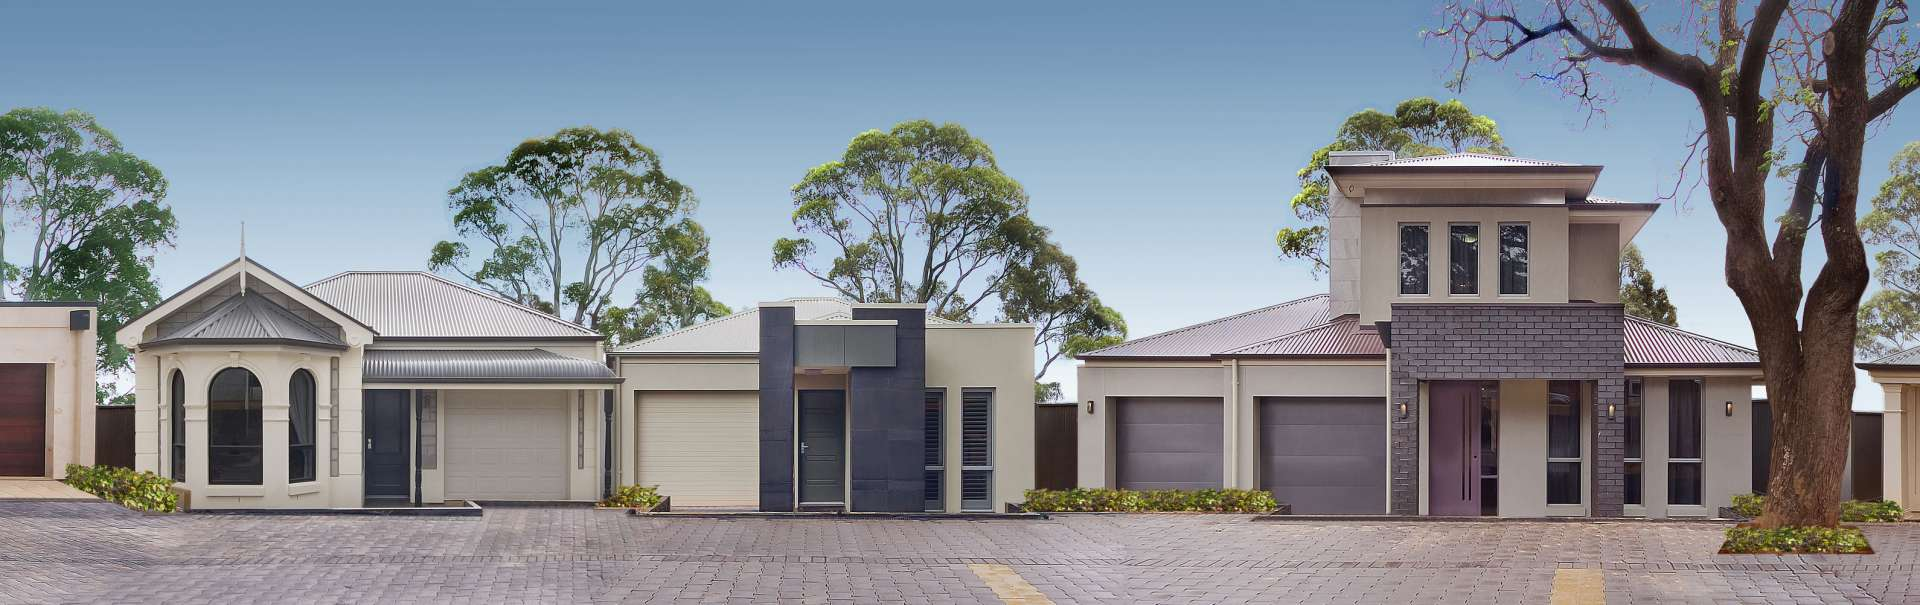 Home | Rossdale Homes | Rossdale Homes - Adelaide, South Australia ...